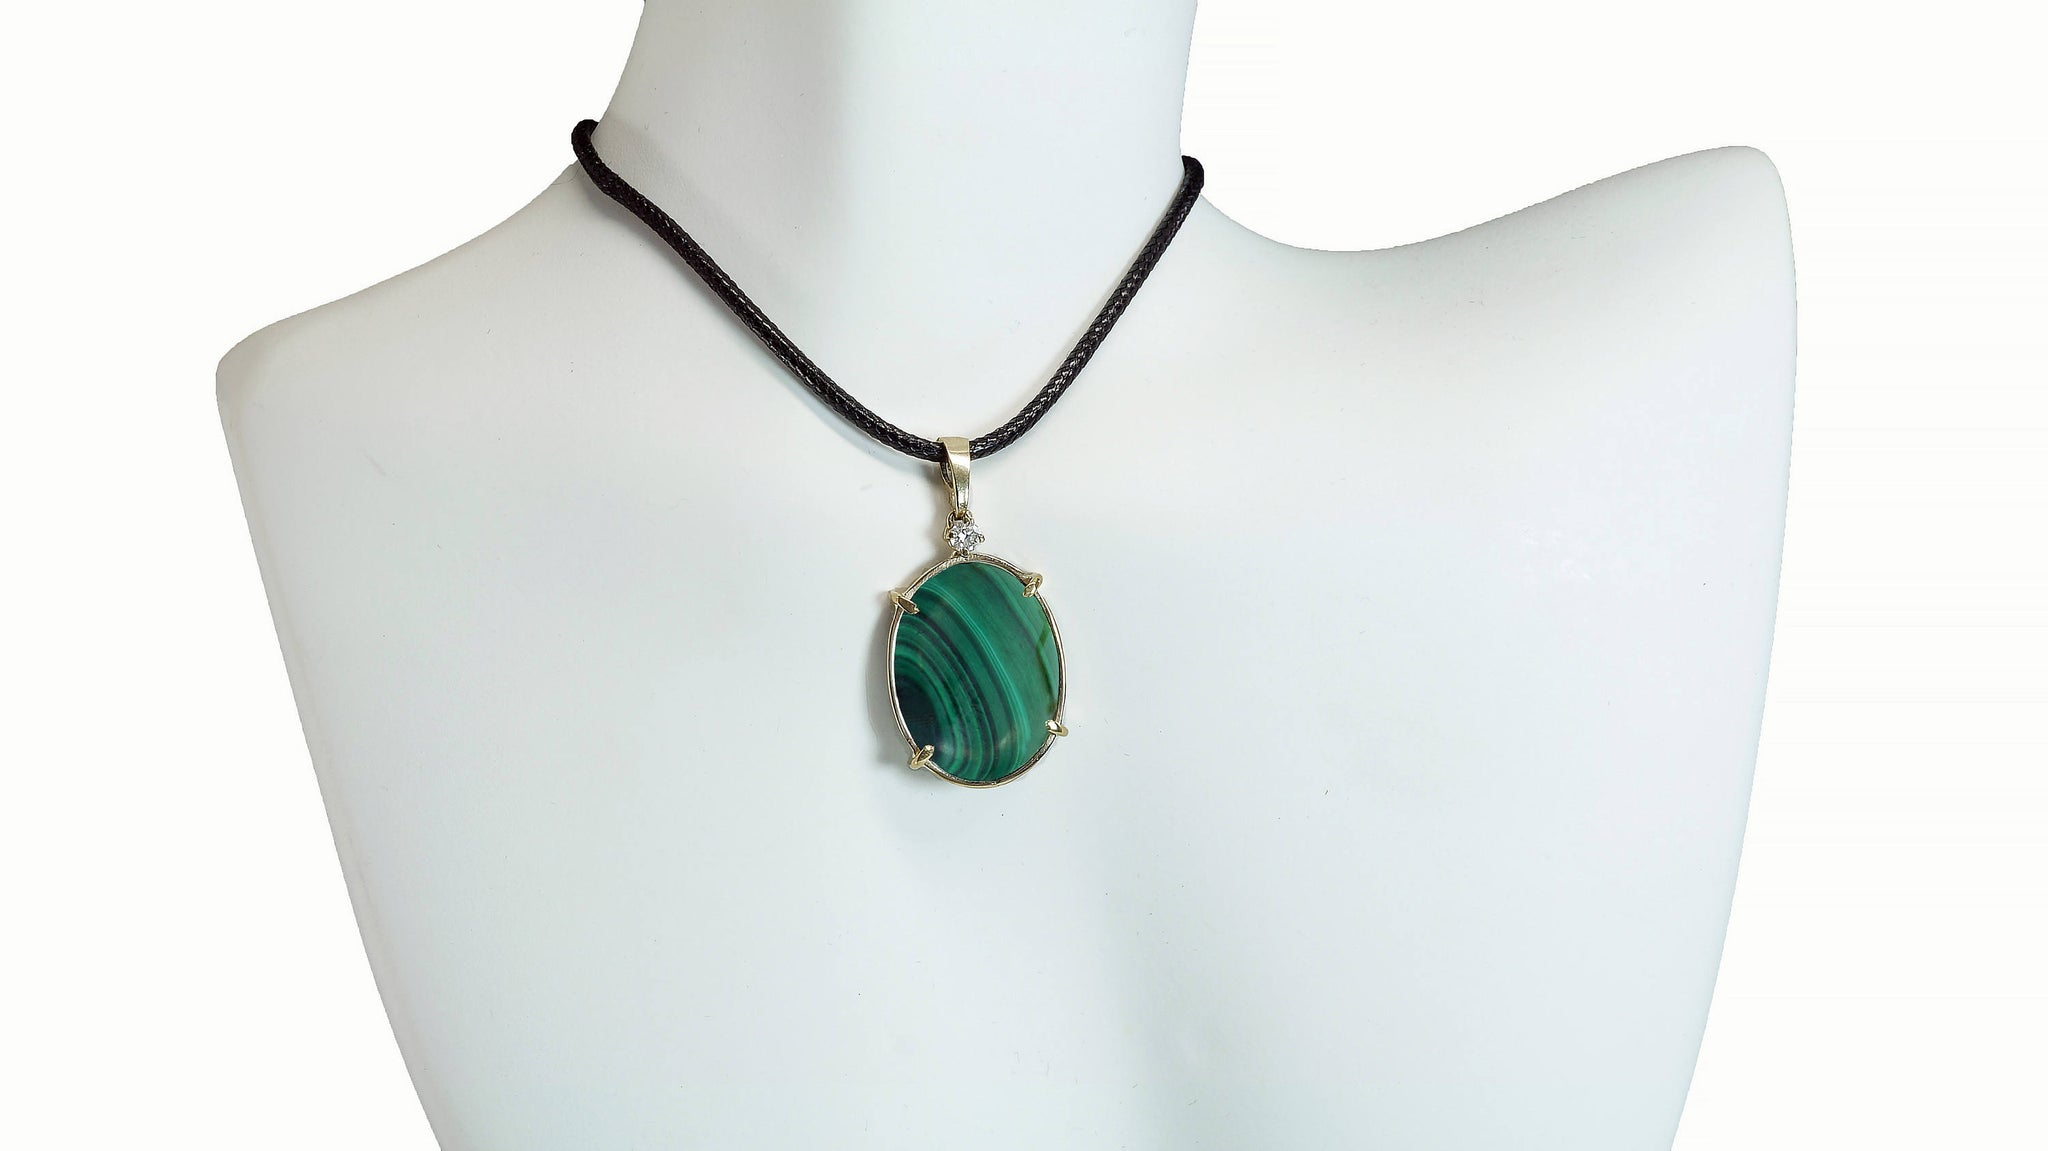 Inspiration bohemian necklace-Malachite necklace-One of a Kind Gifts-Malachite cameo-Birthday gift